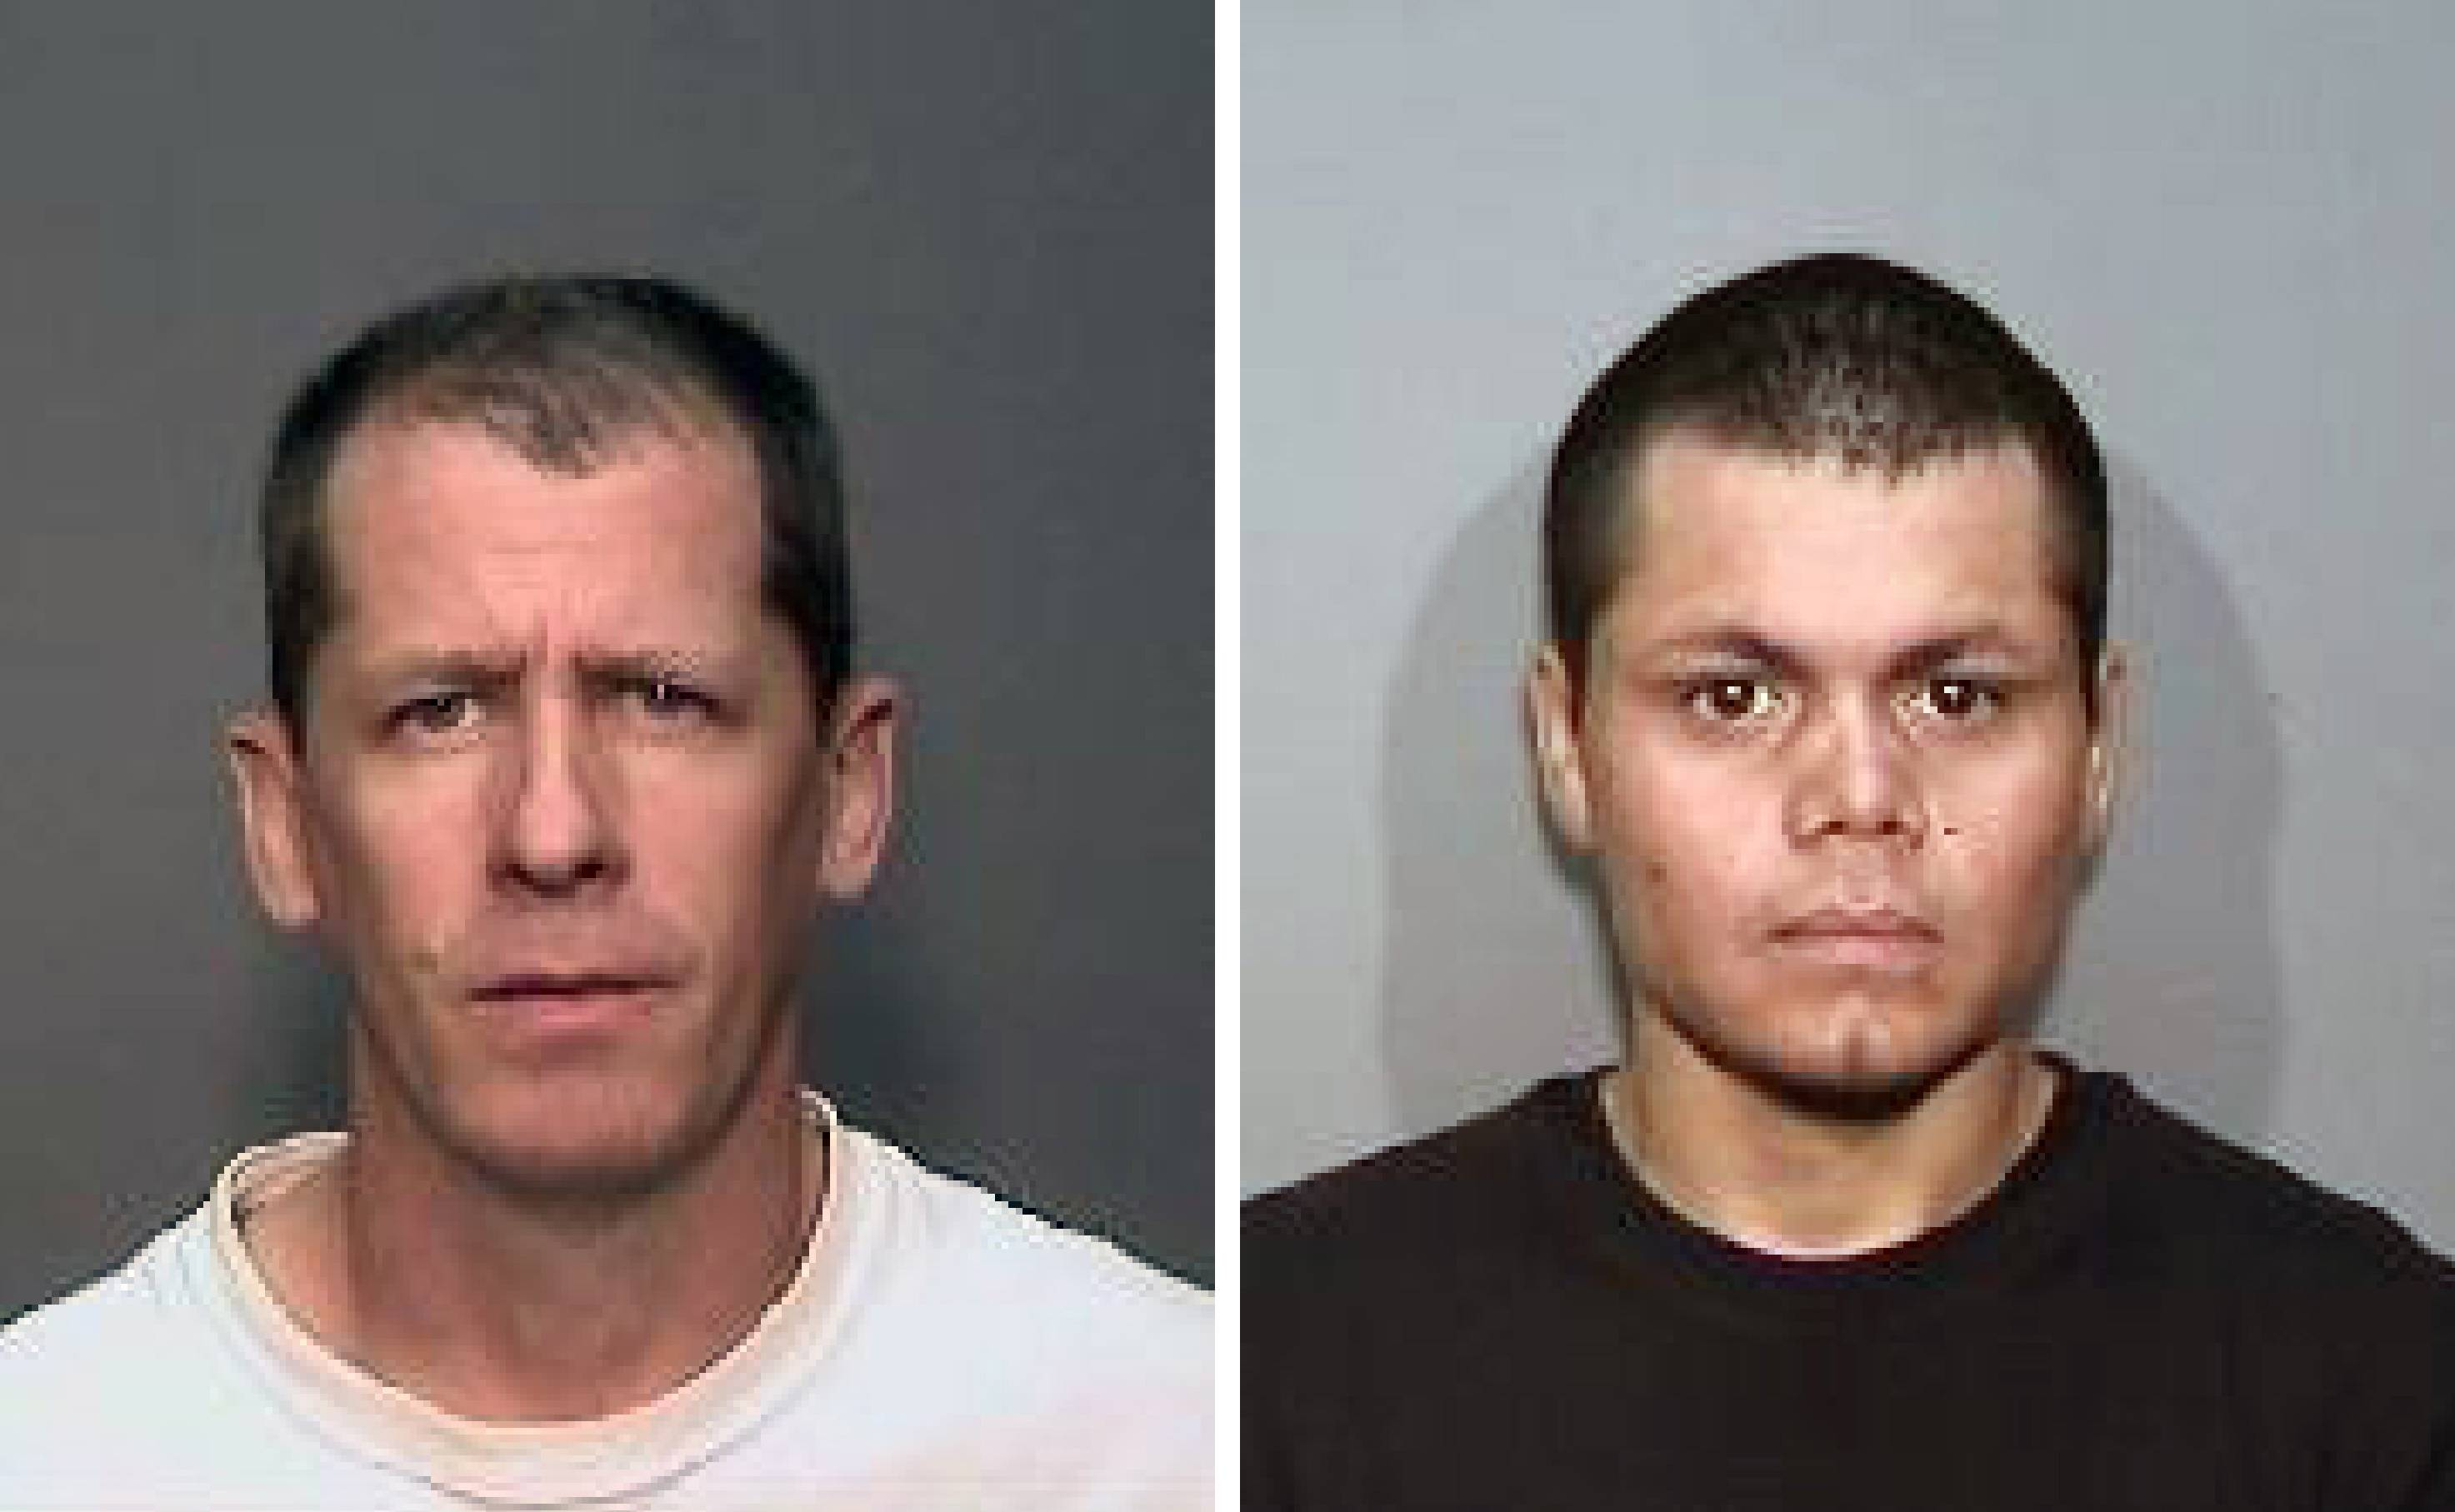 This combination of undated photos from the Megan's Law website shows suspects, Steven Dean Gordon, 45, left, and Franc Cano, 27, who were arrested on Friday, April 11, 2014, on suspicion of killing four women in Orange County, Calif. The two sex offenders charged with raping and killing four California women while wearing GPS monitors had escaped parole supervision and left the state together more than once in the four years before their most recent arrest, The Associated Press learned Friday May 23.